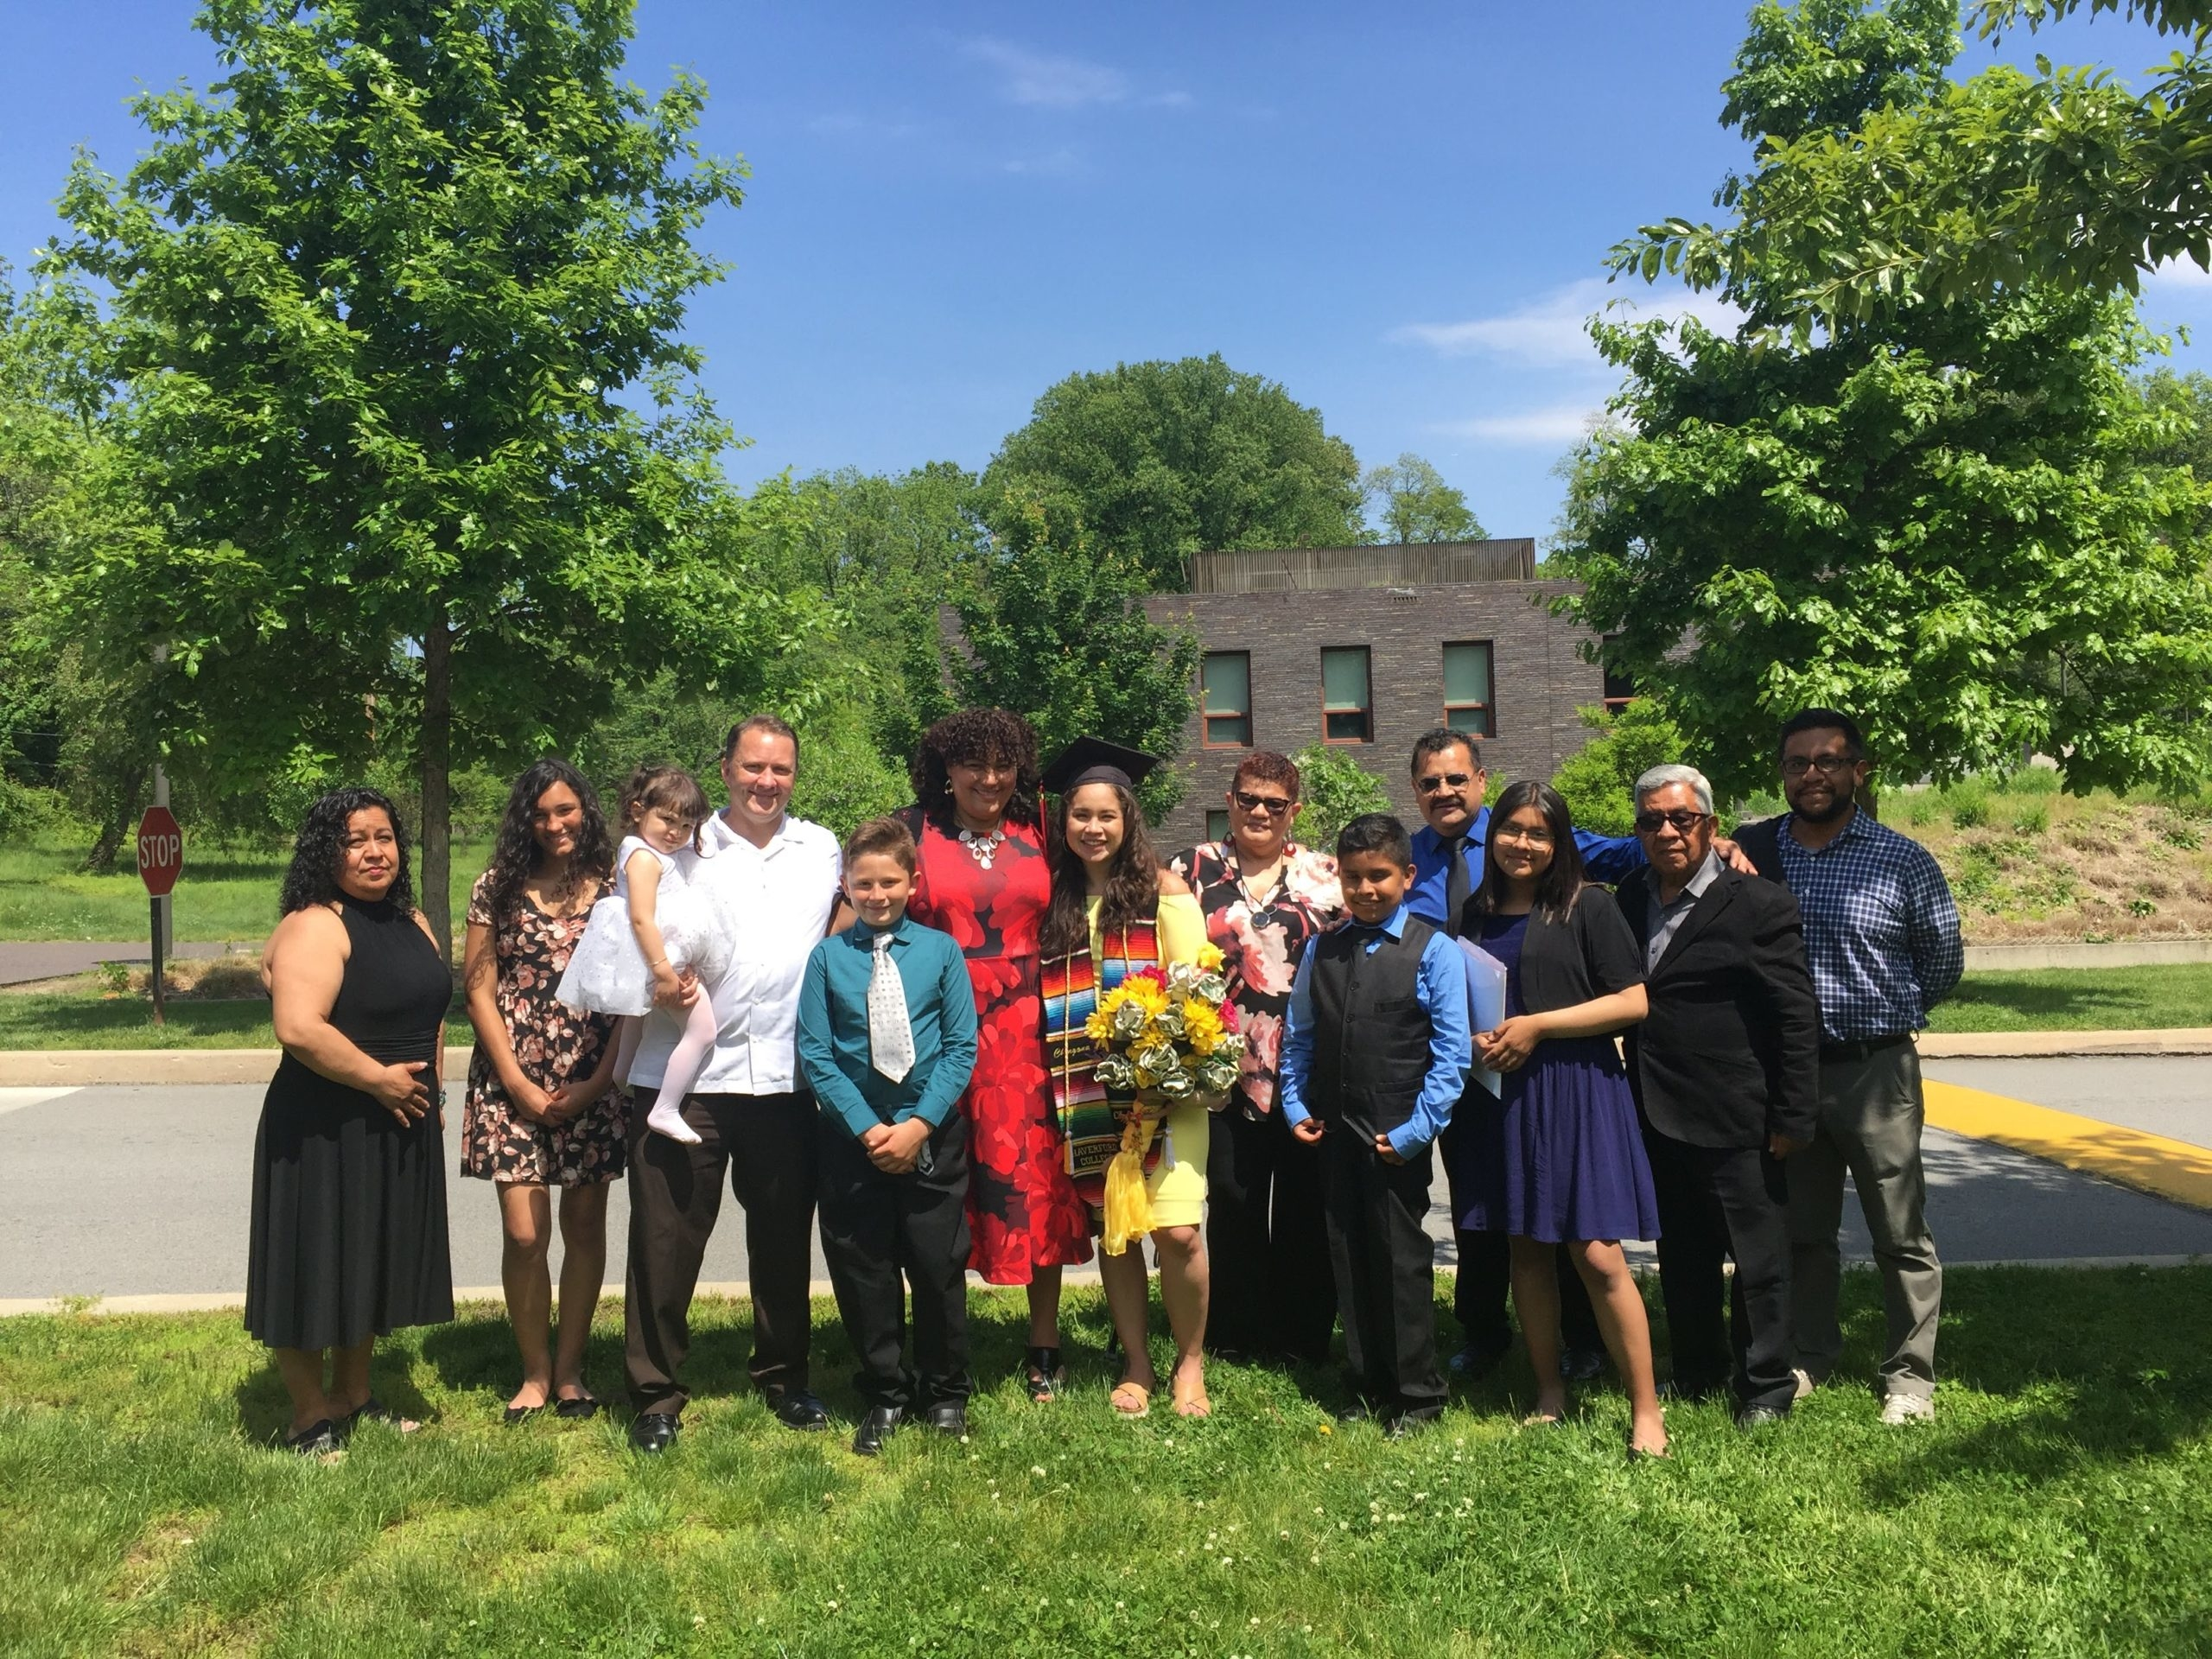 Raquel and Tania, who is holding a big bouquet of flowers and wearing a graduation cap, stand in a line with their family members on Haverford's campus